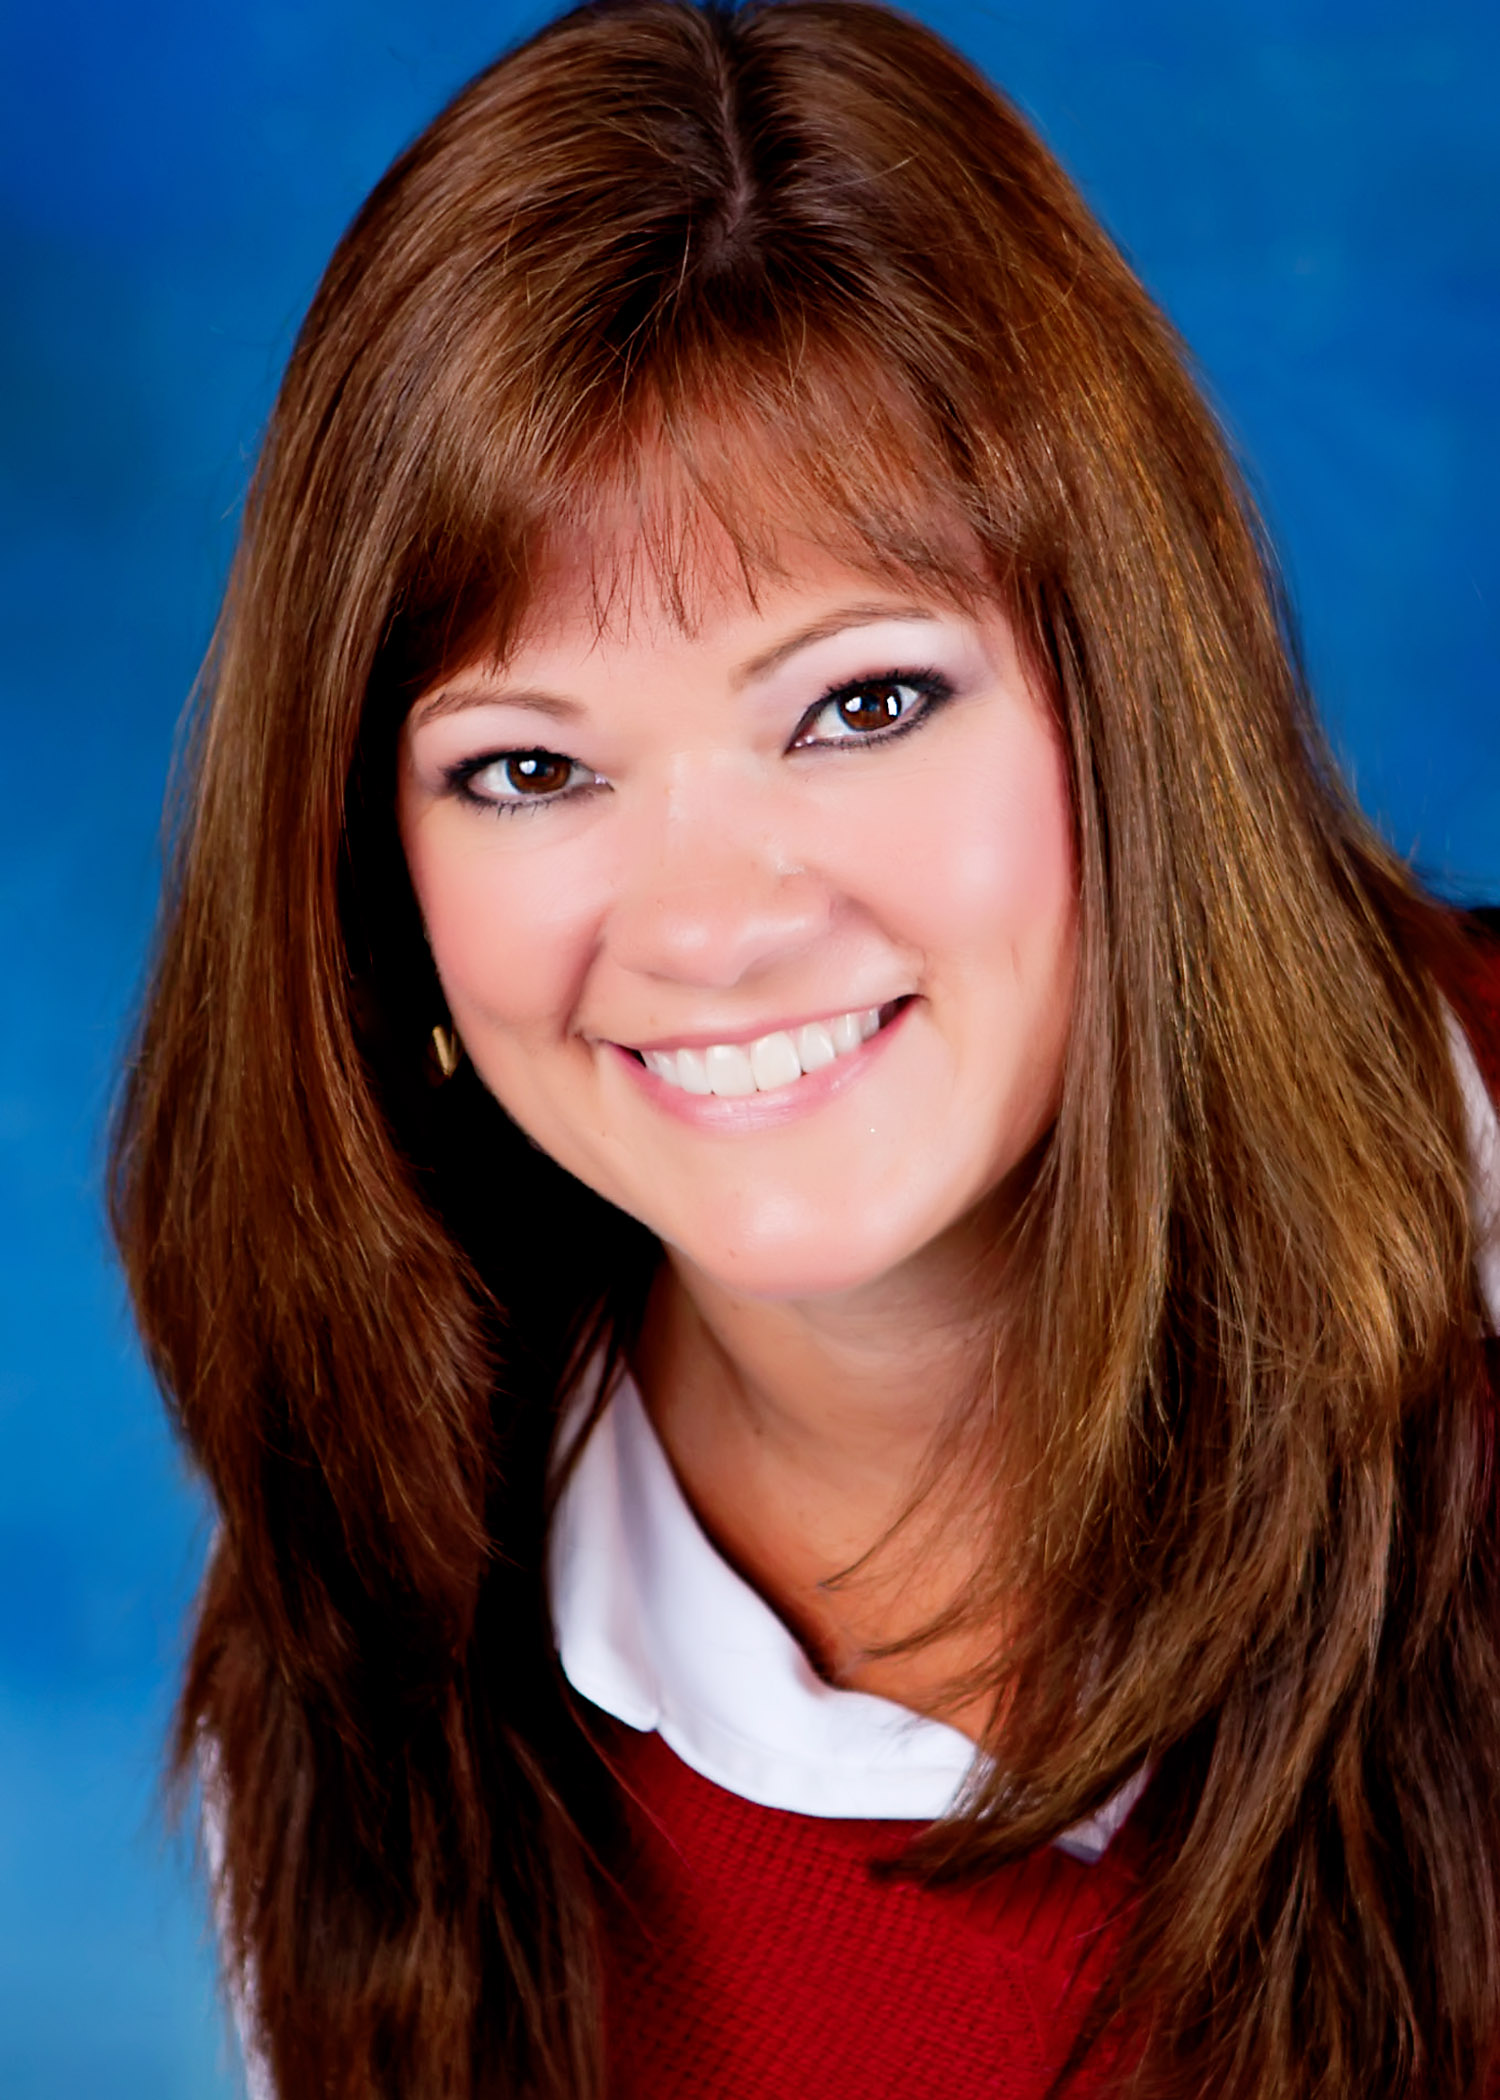 Shari Elfrink - Owner of 1st Class Travel and Travel Agent - Jackson, Missouri